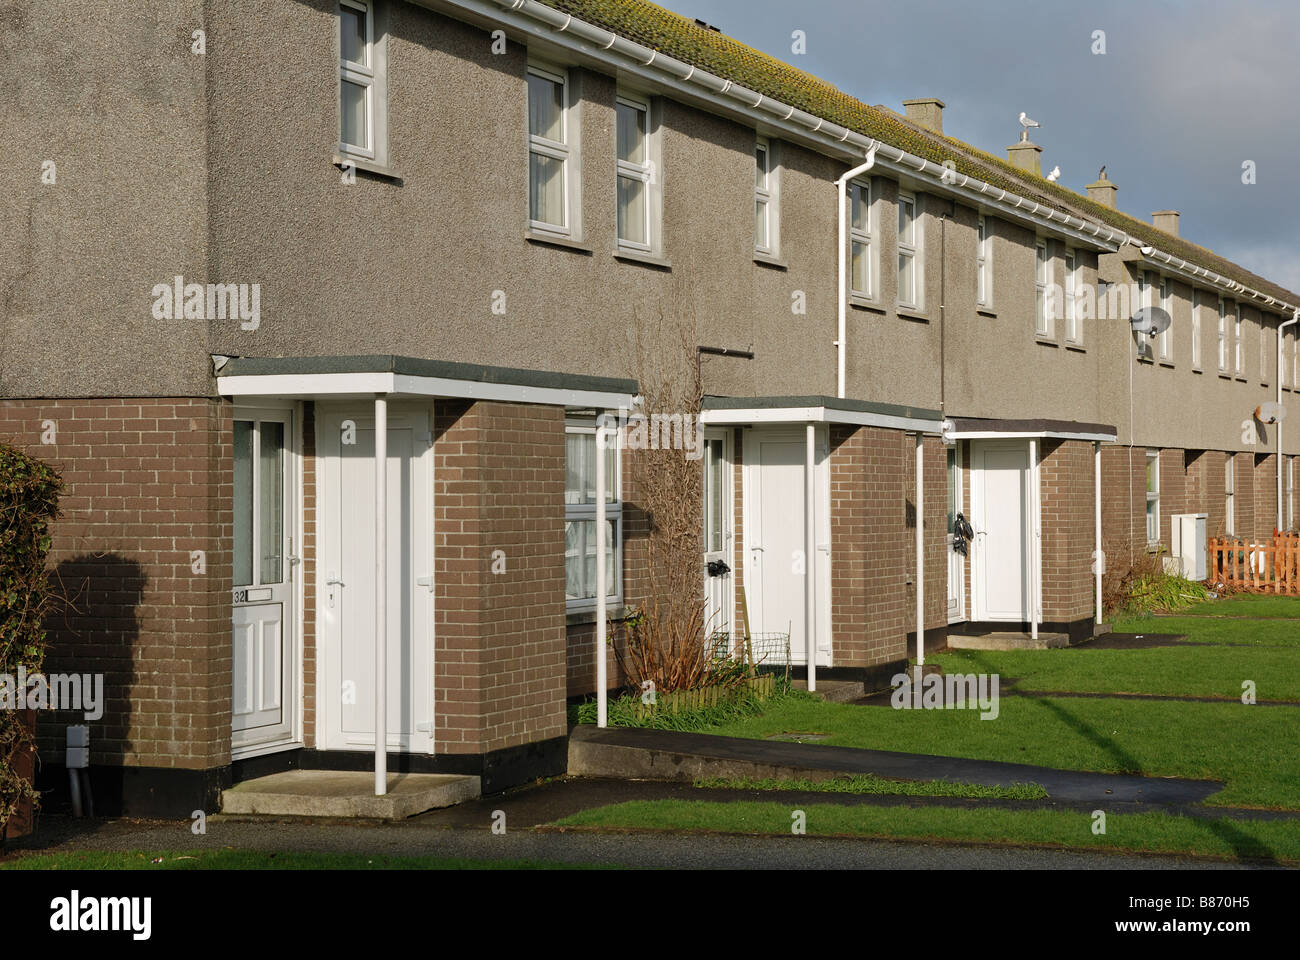 a row of council houses in kirkby, liverpool, uk Stock Photo